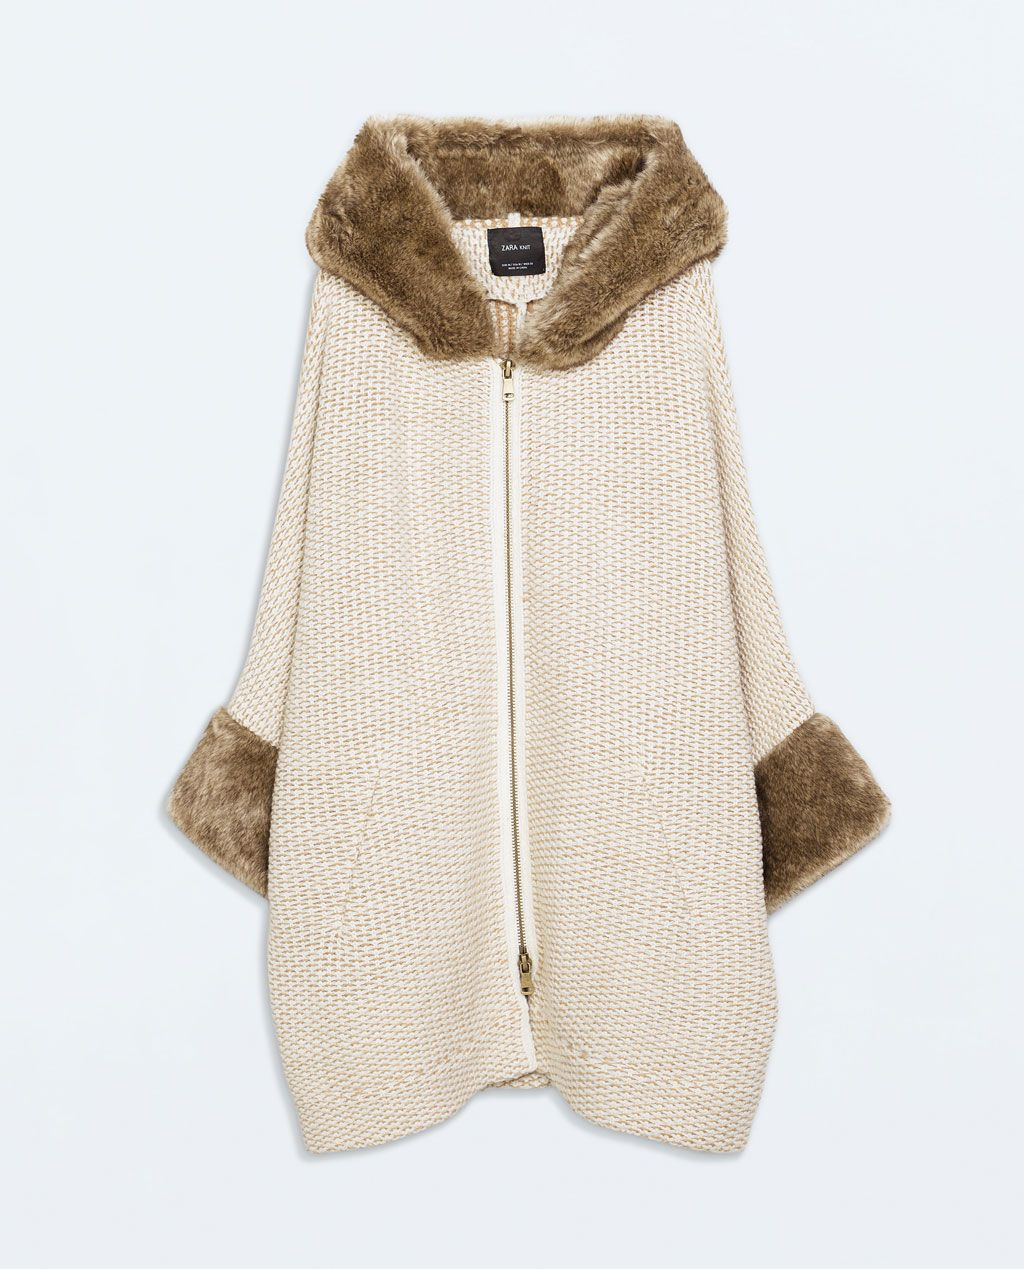 832426b8 Image 6 of FAUX FUR JACKET WITH HOOD from Zara | Style | Faux fur ...